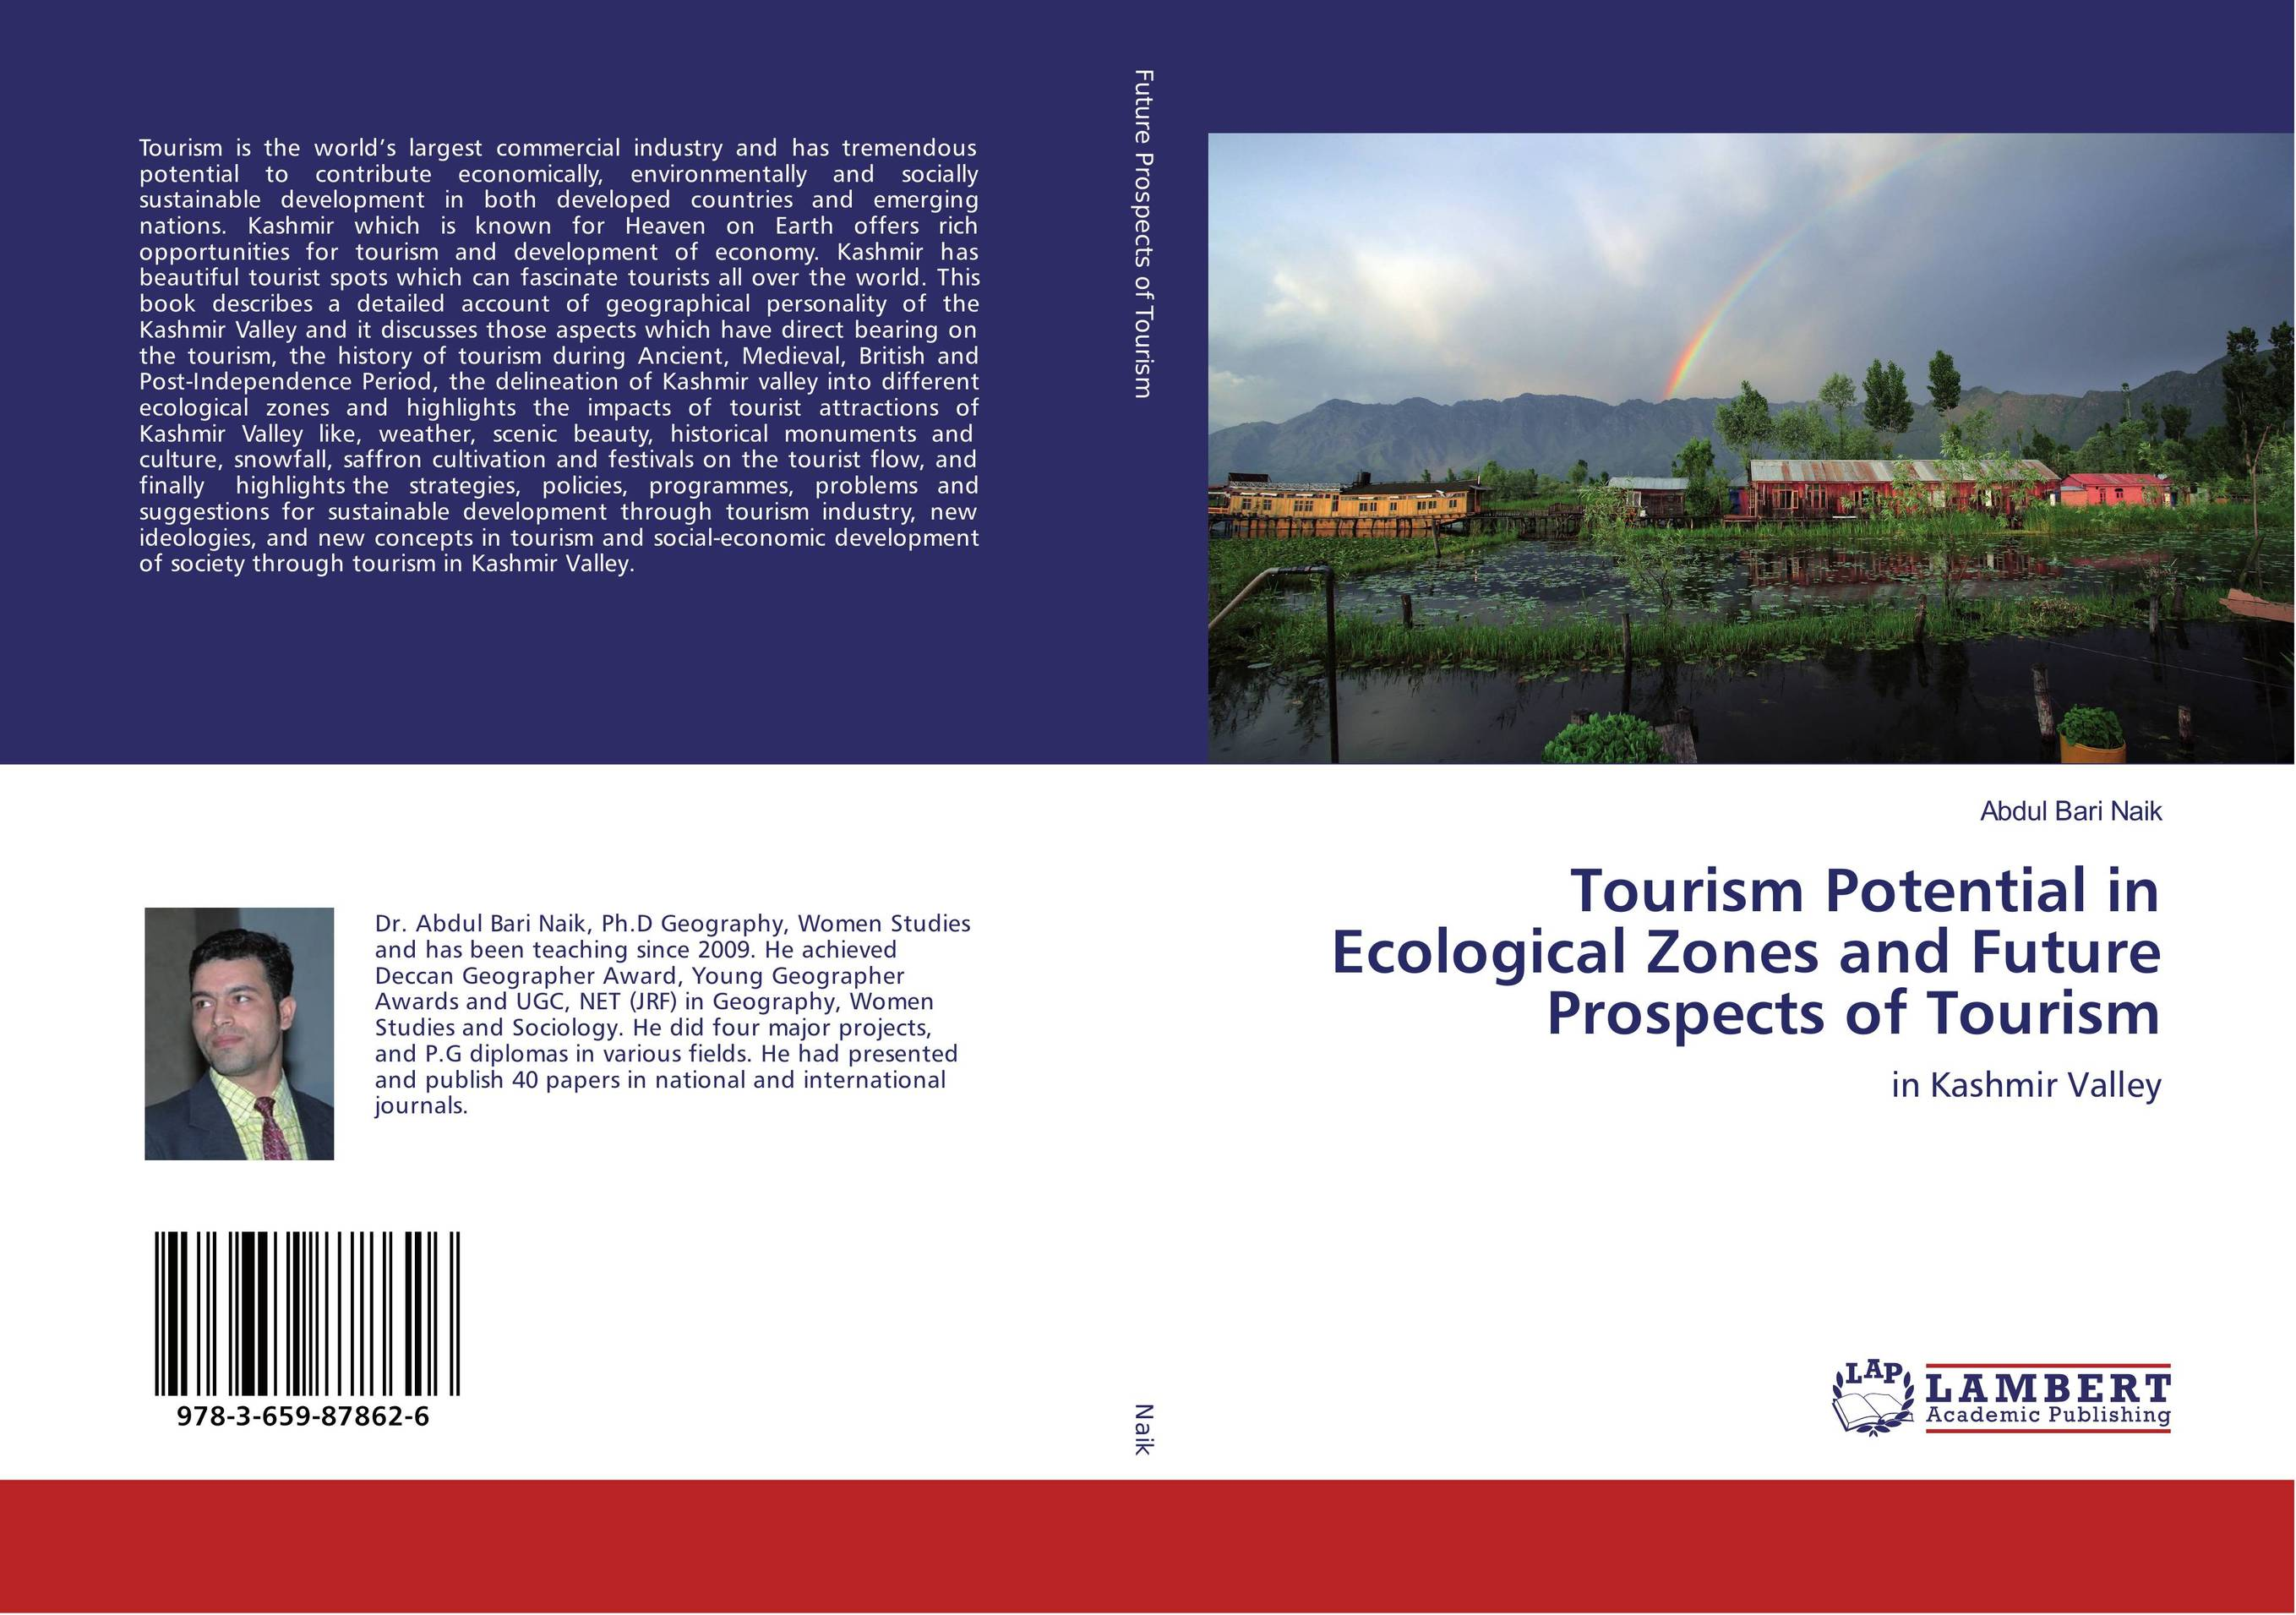 Tourism Potential in Ecological Zones and Future Prospects of Tourism